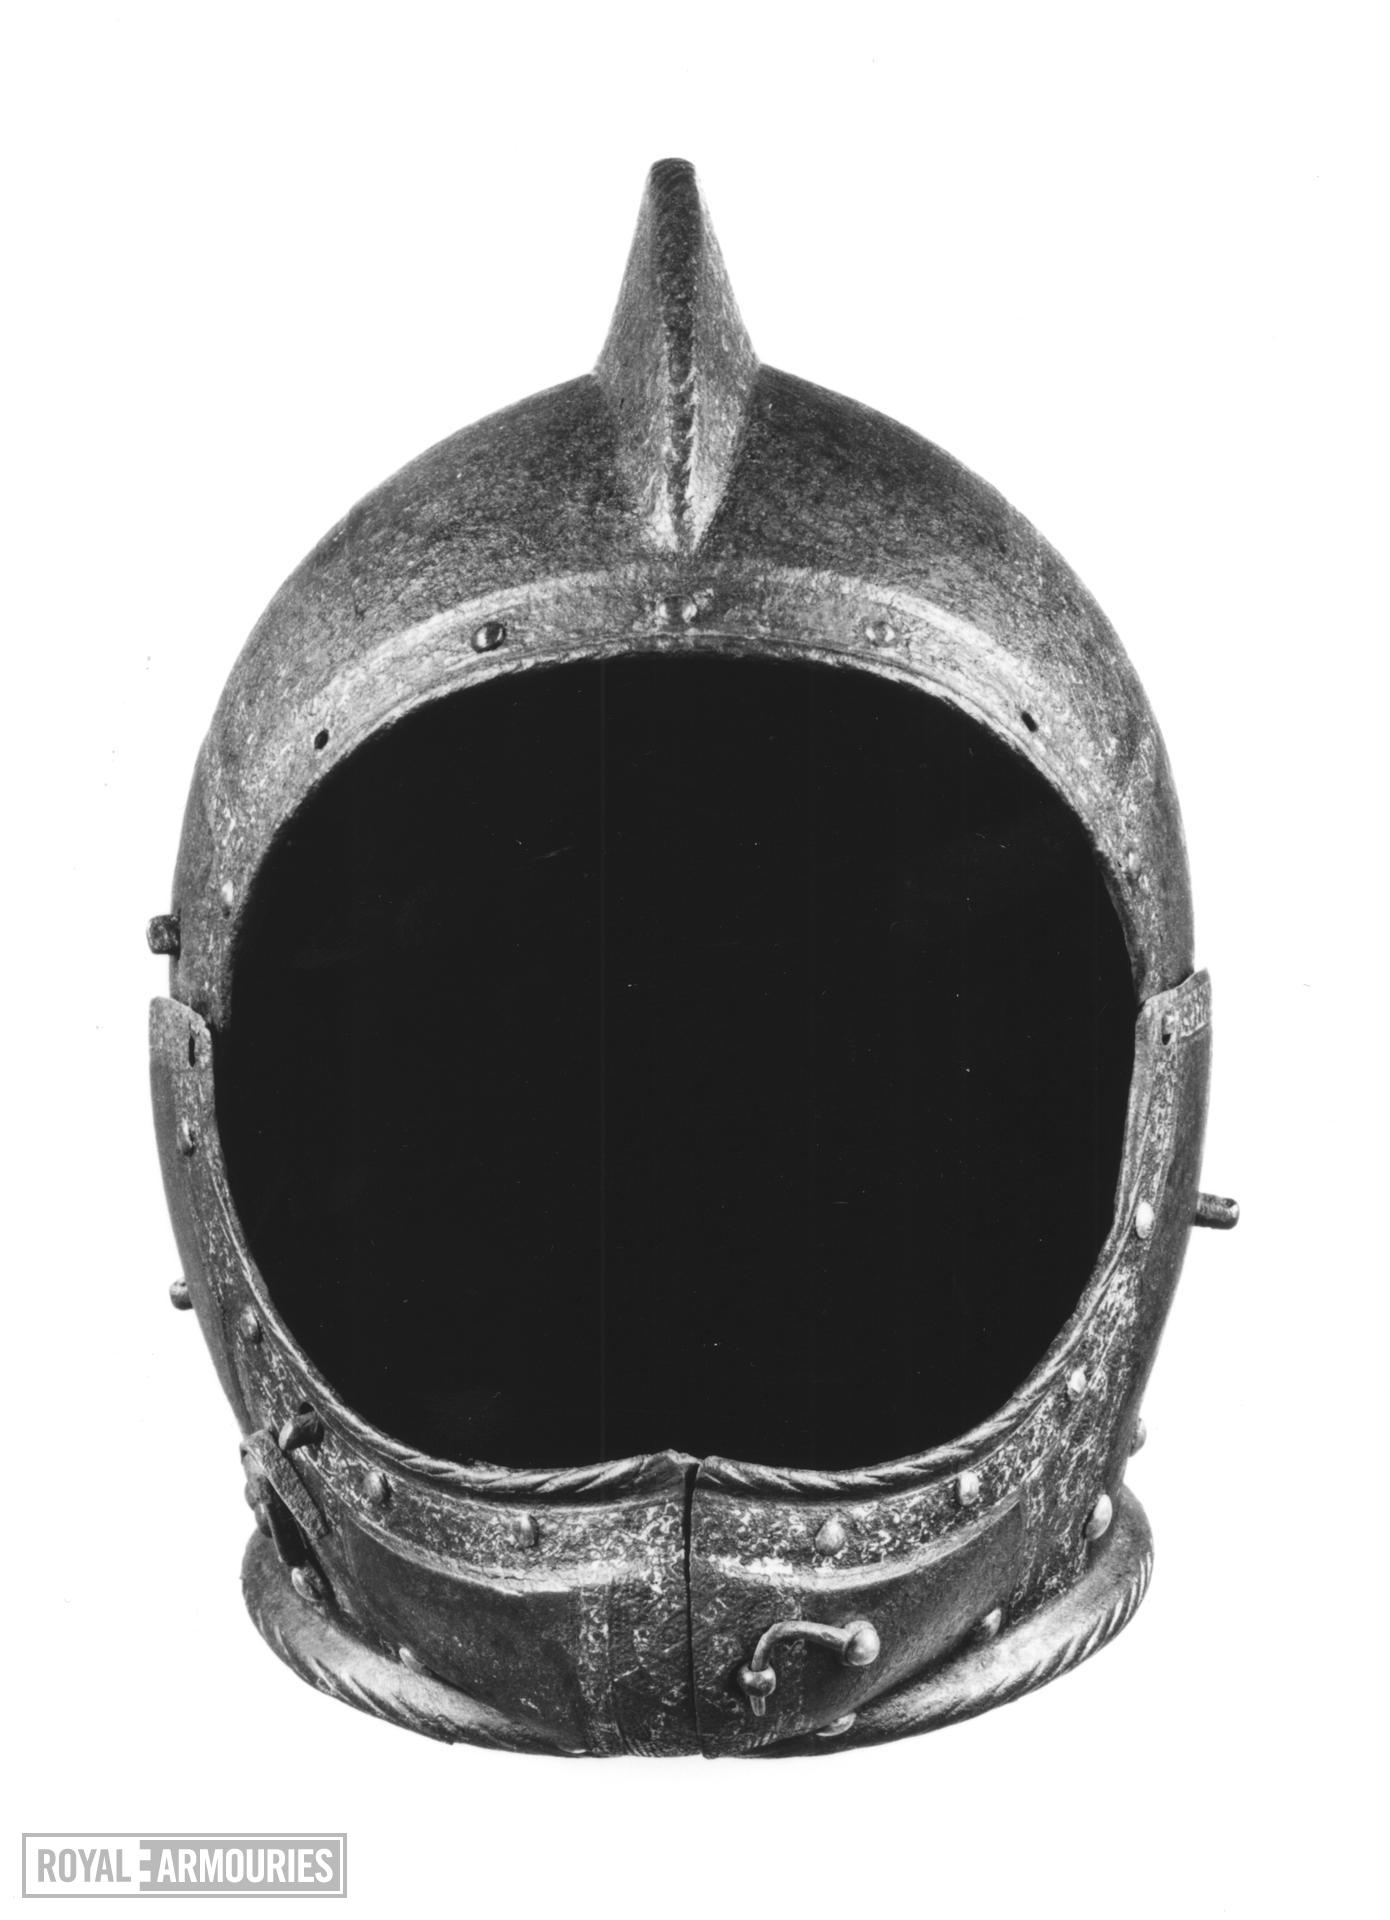 Armet Probably for Peregrine Bertie, Lord Willoughby d'Eresby